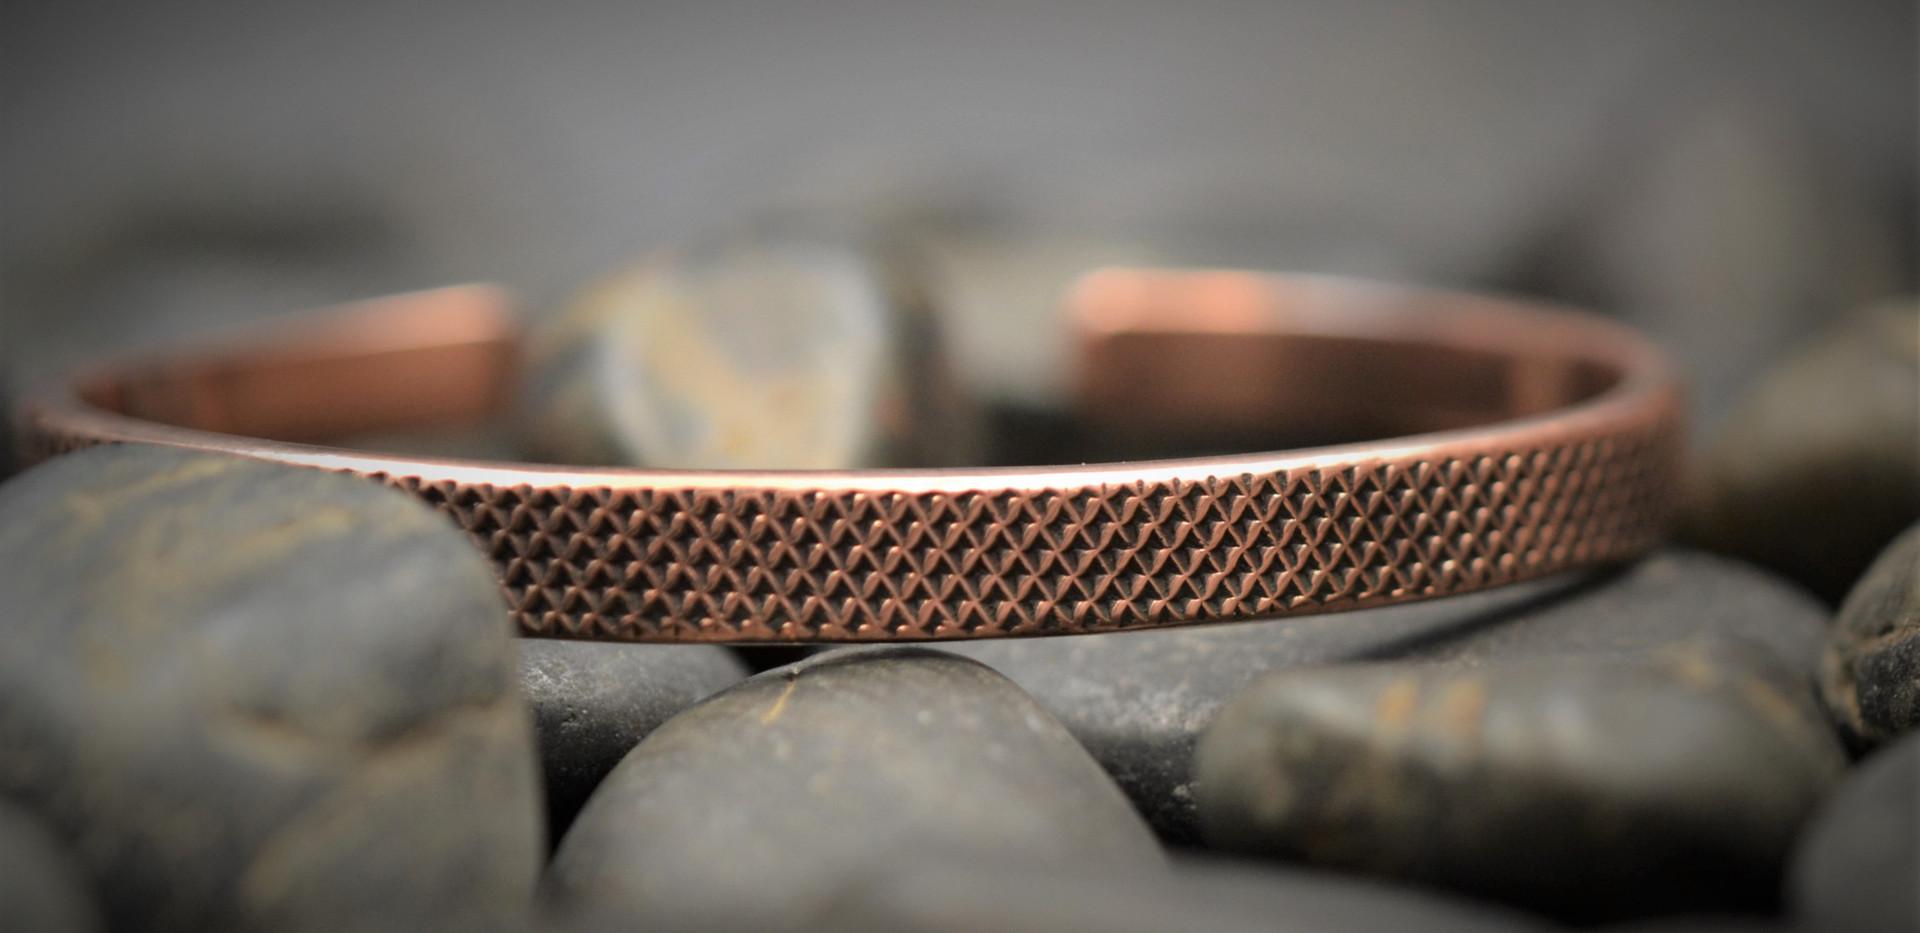 Men's Copper Txtd Cuff5.JPG